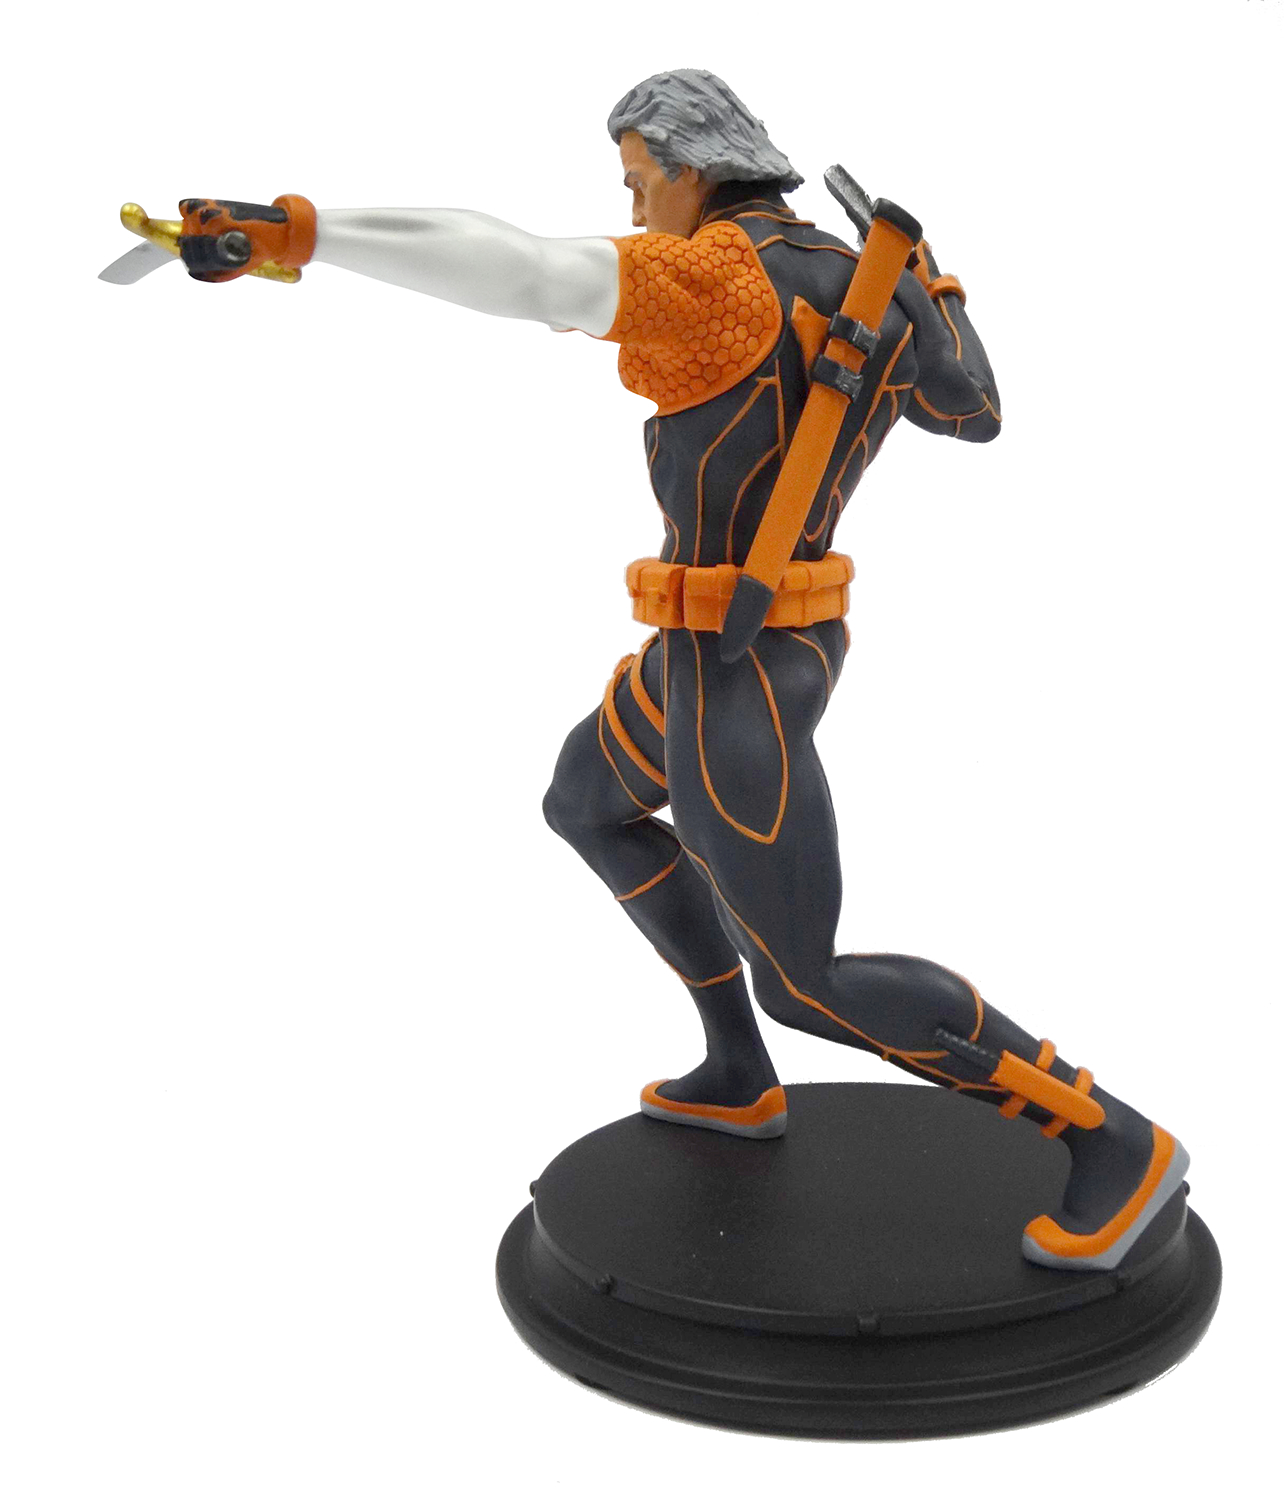 DC COMICS REBIRTH DEATHSTROKE UNMASKED PX STATUE